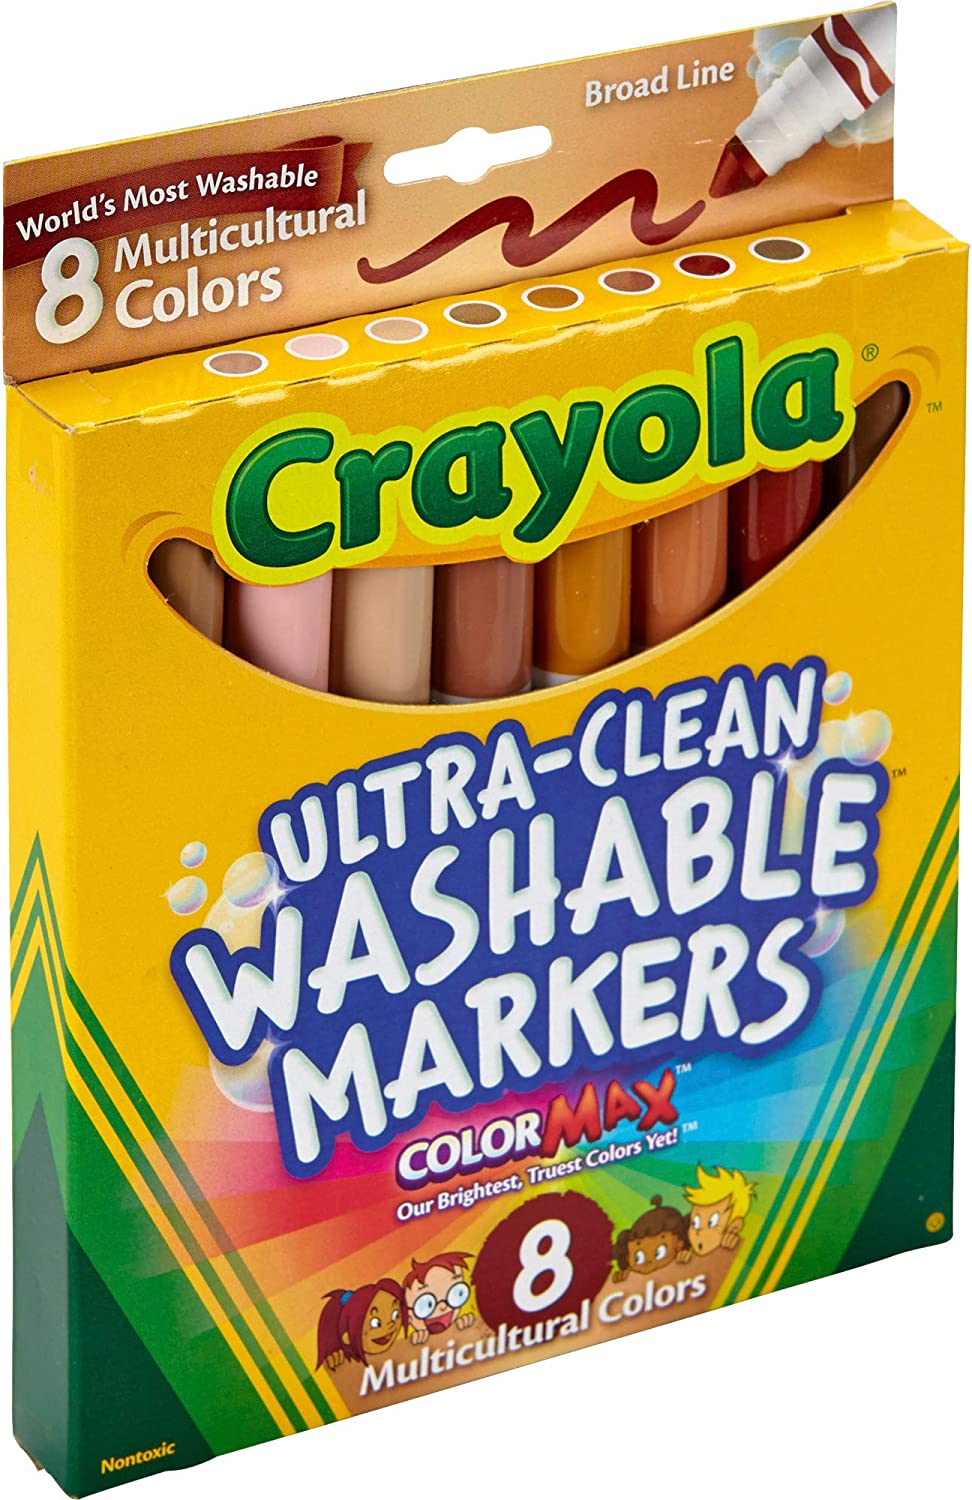 Crayola 8CT Washable Multicultural Colors Conical Tip Markers Binney /& Smith 58-7801